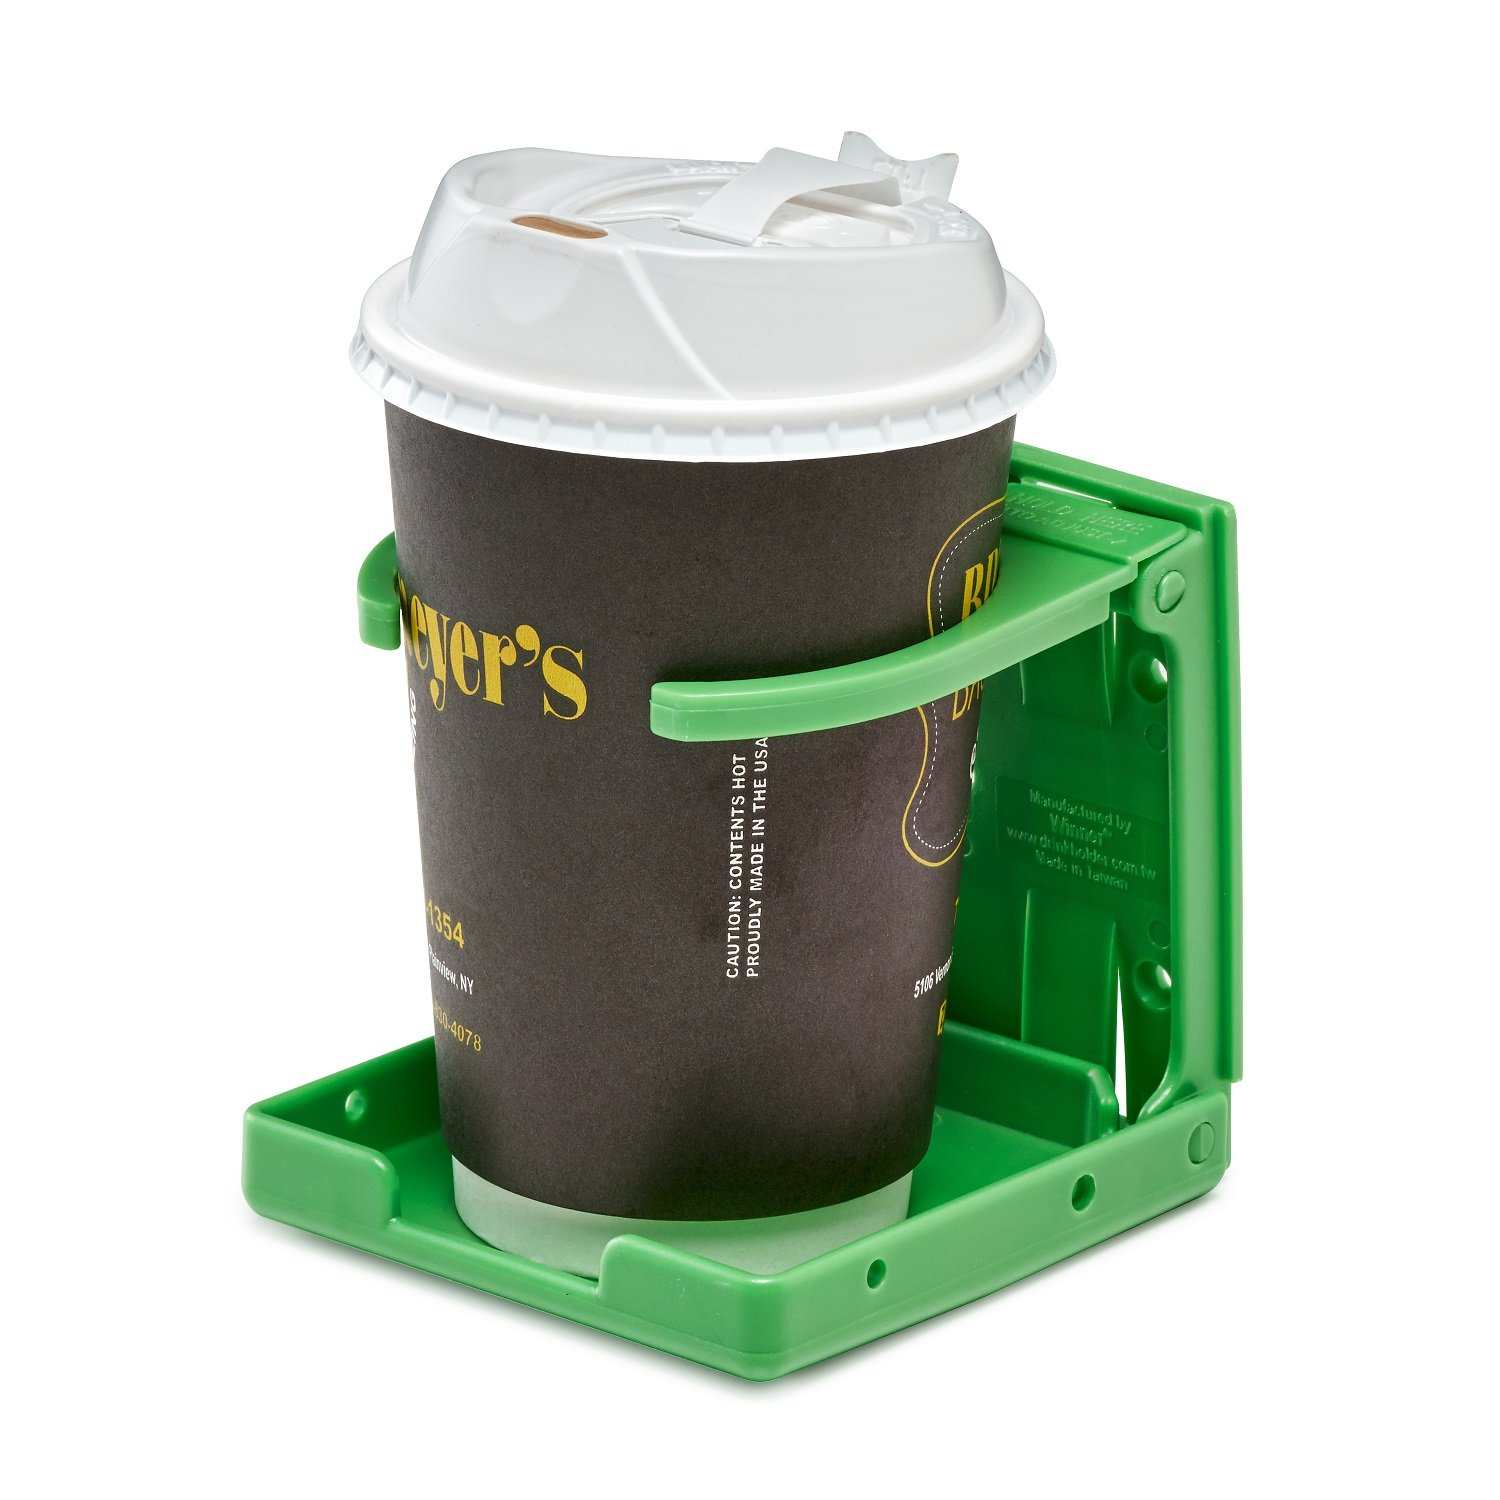 AdirMed Universal Drinking Cup Holder - for Any Kind of Strollers, Walkers, Bicycles, Wheelchairs, Rollator, Cane & Crutch (Green)